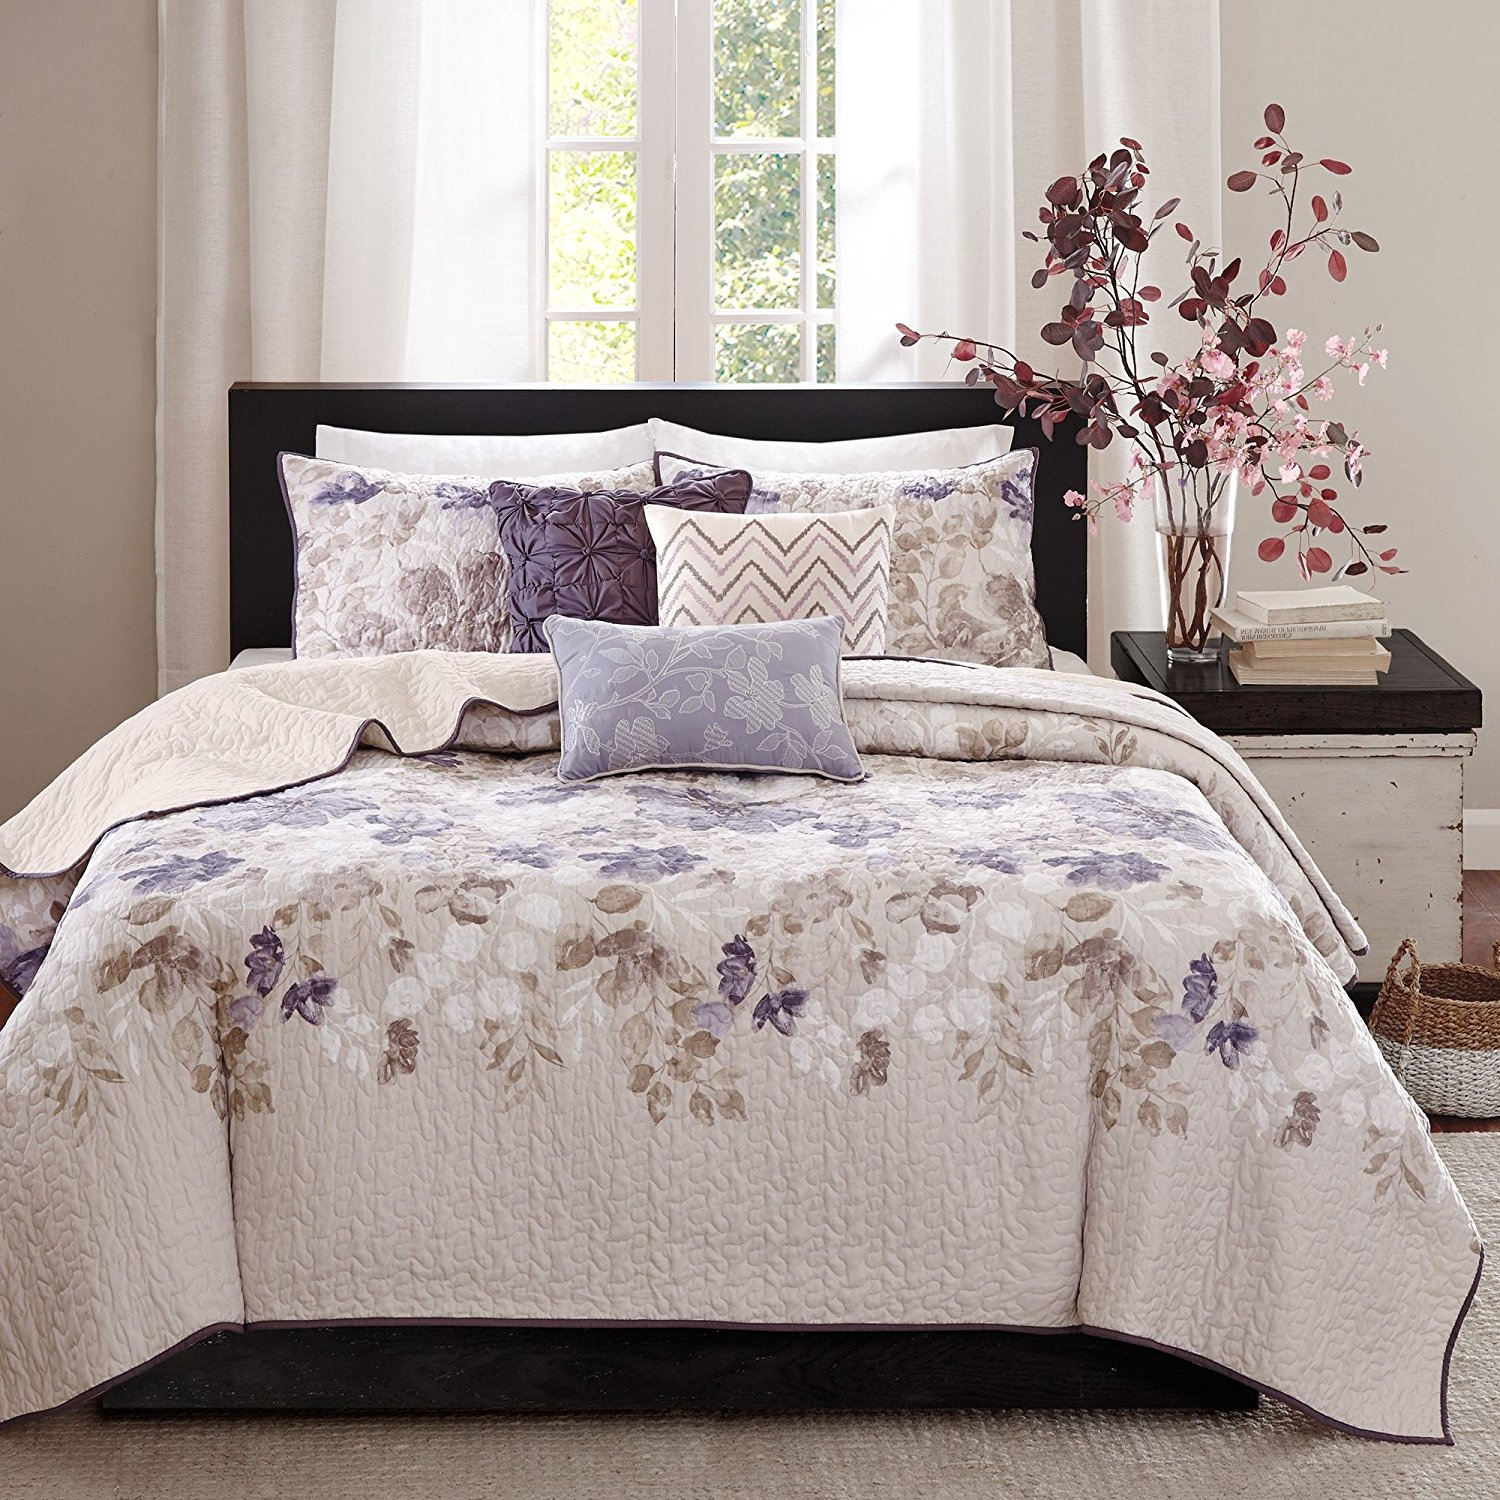 6 Piece Taupe Purple Floral Coverlet Set King/Cal King, Quilted Violet Lavender Flower Leaf Pattern Watercolor Print Bedding Accent Geometric Chevron Pillows Light Weight Medium Warmth, Polyester